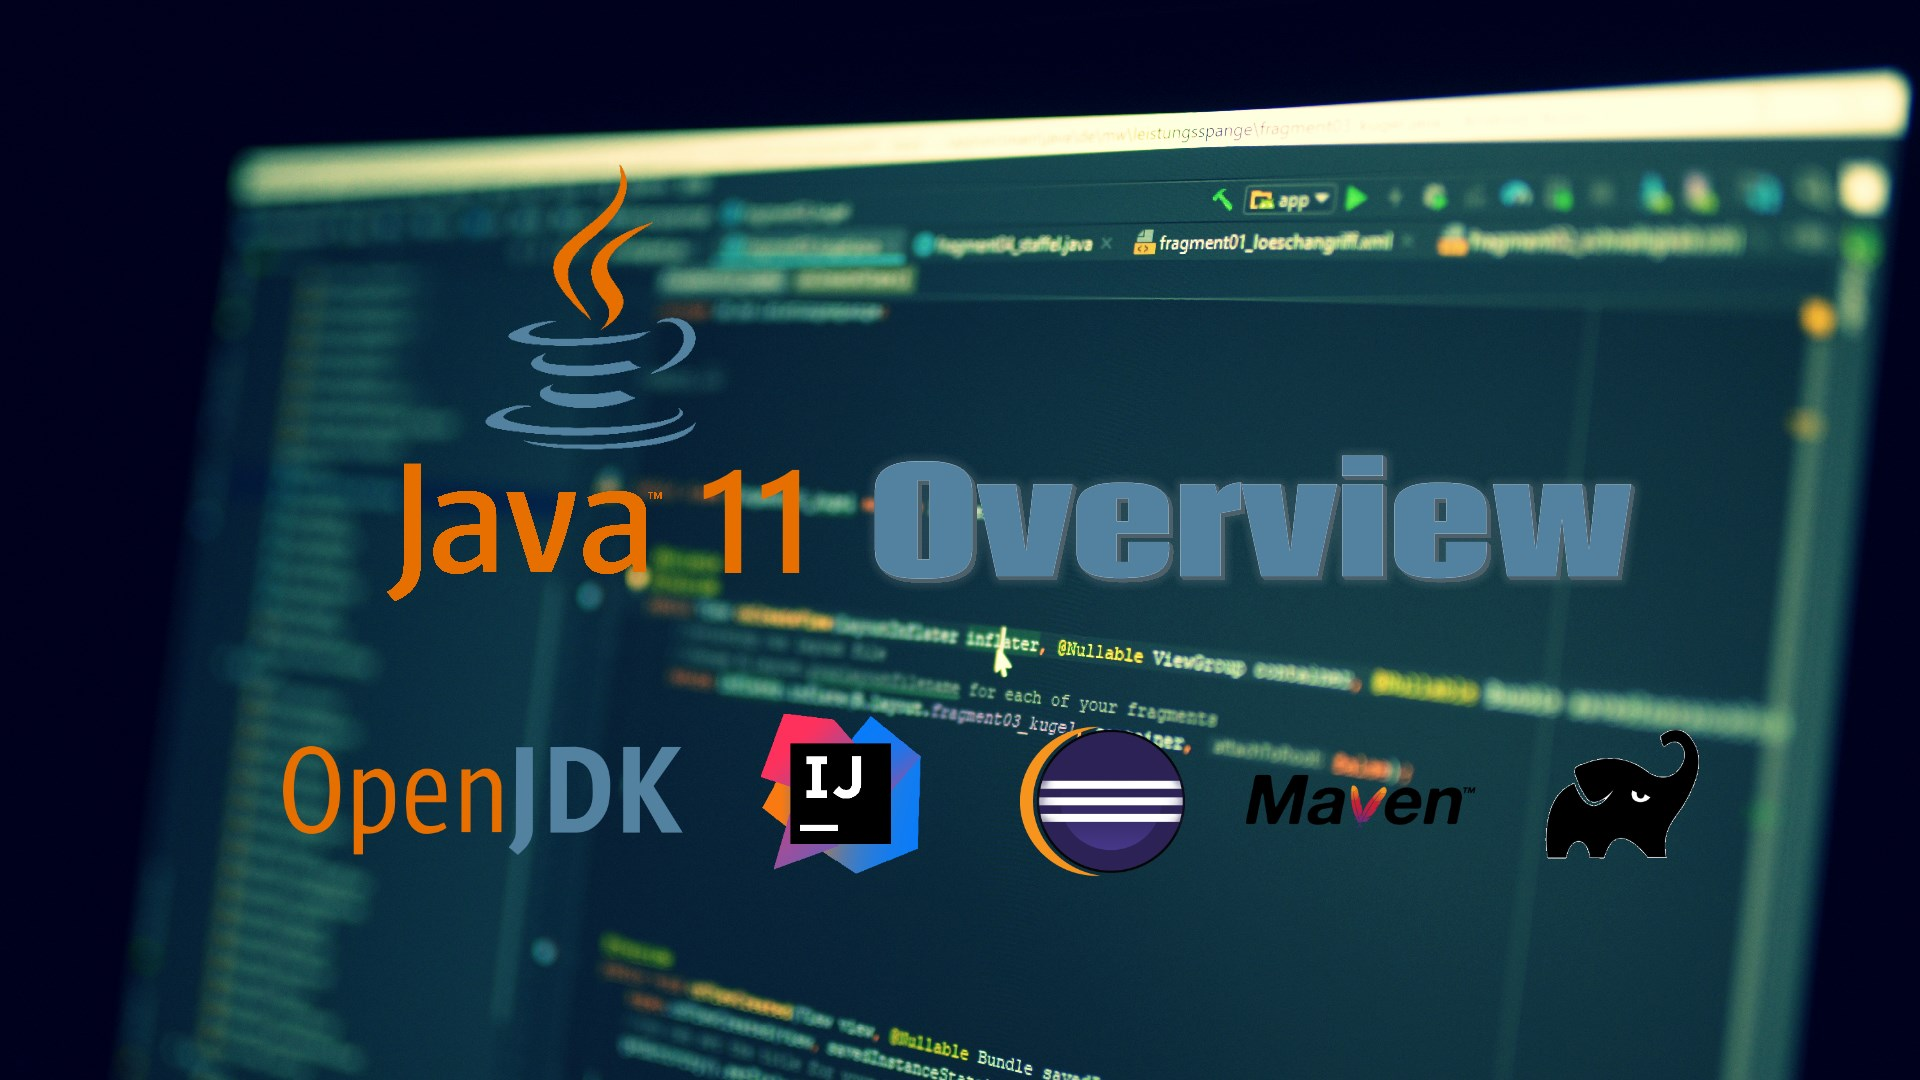 Java 11 Overview: OpenJDK, IntelliJ IDEA, Eclipse, Maven and Gradle